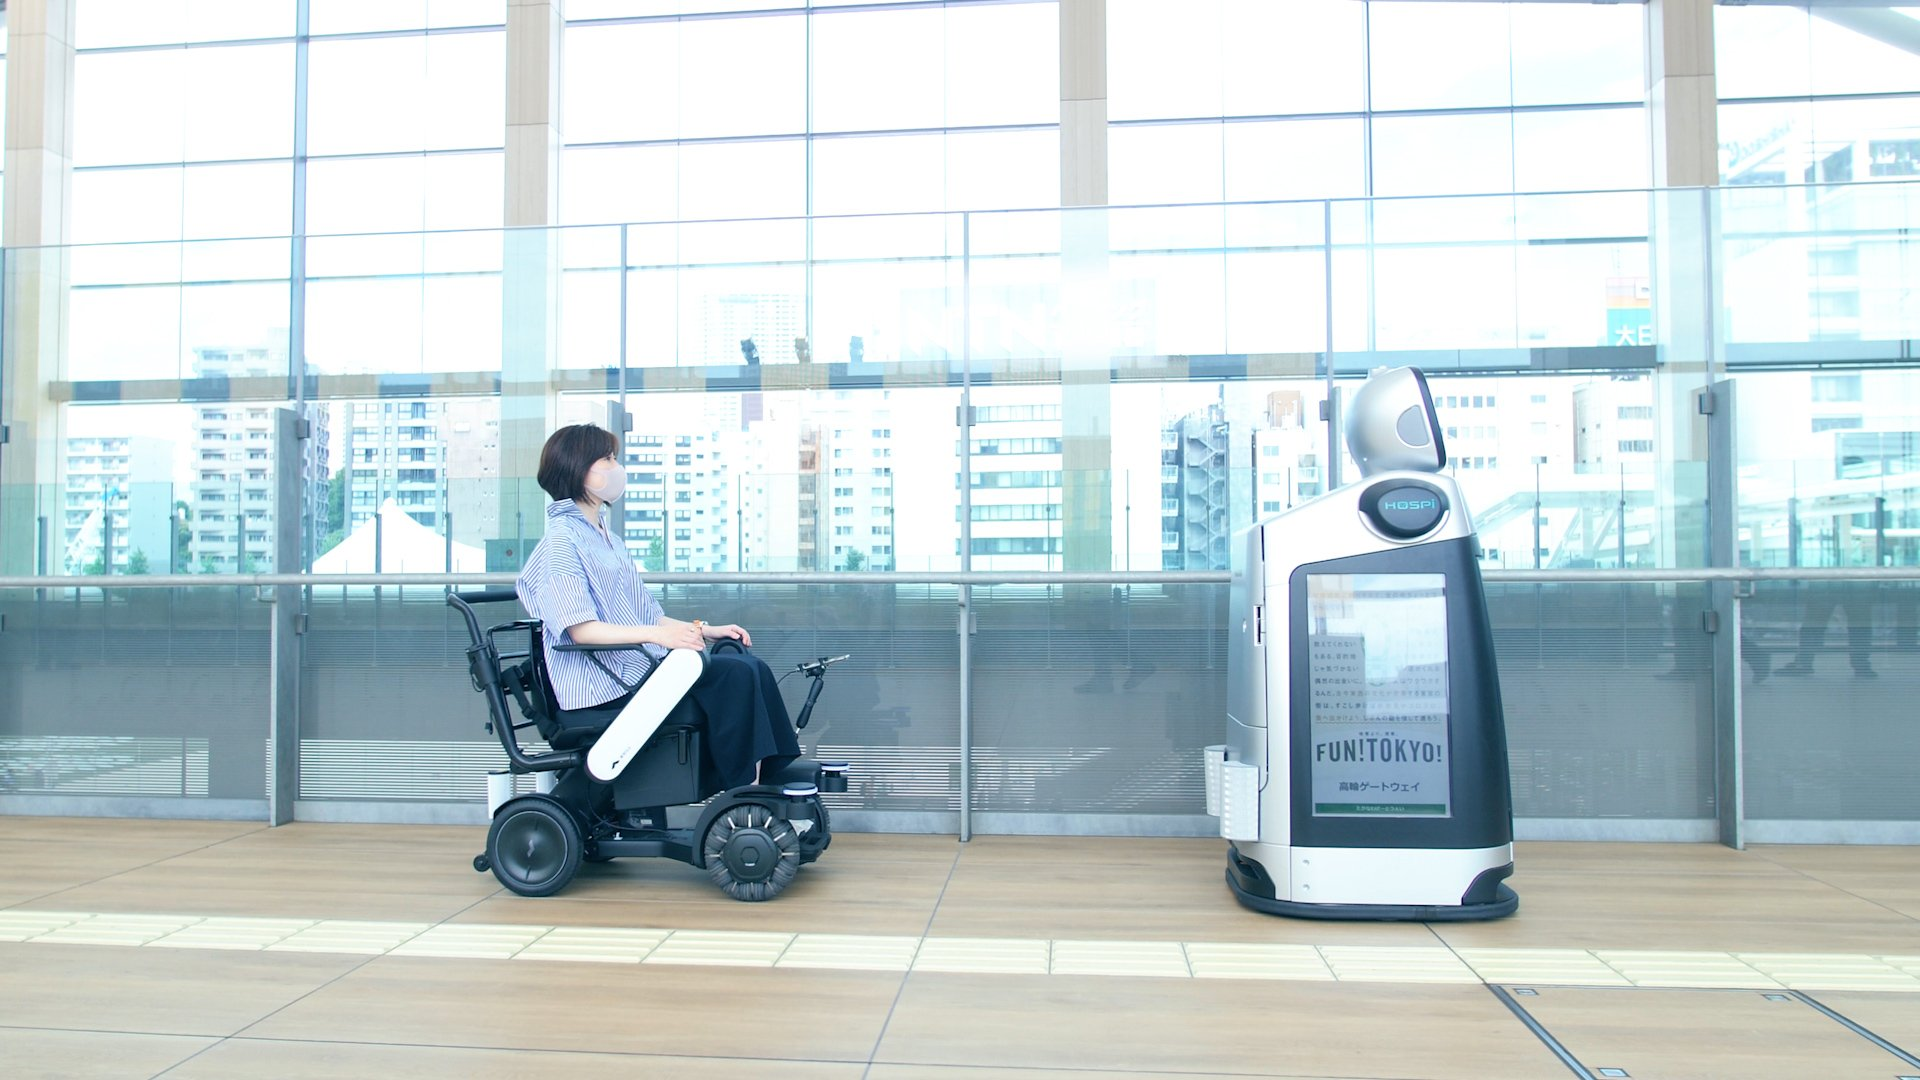 Photo: Guidance robot HOSPI Signage (right) and robotic mobility